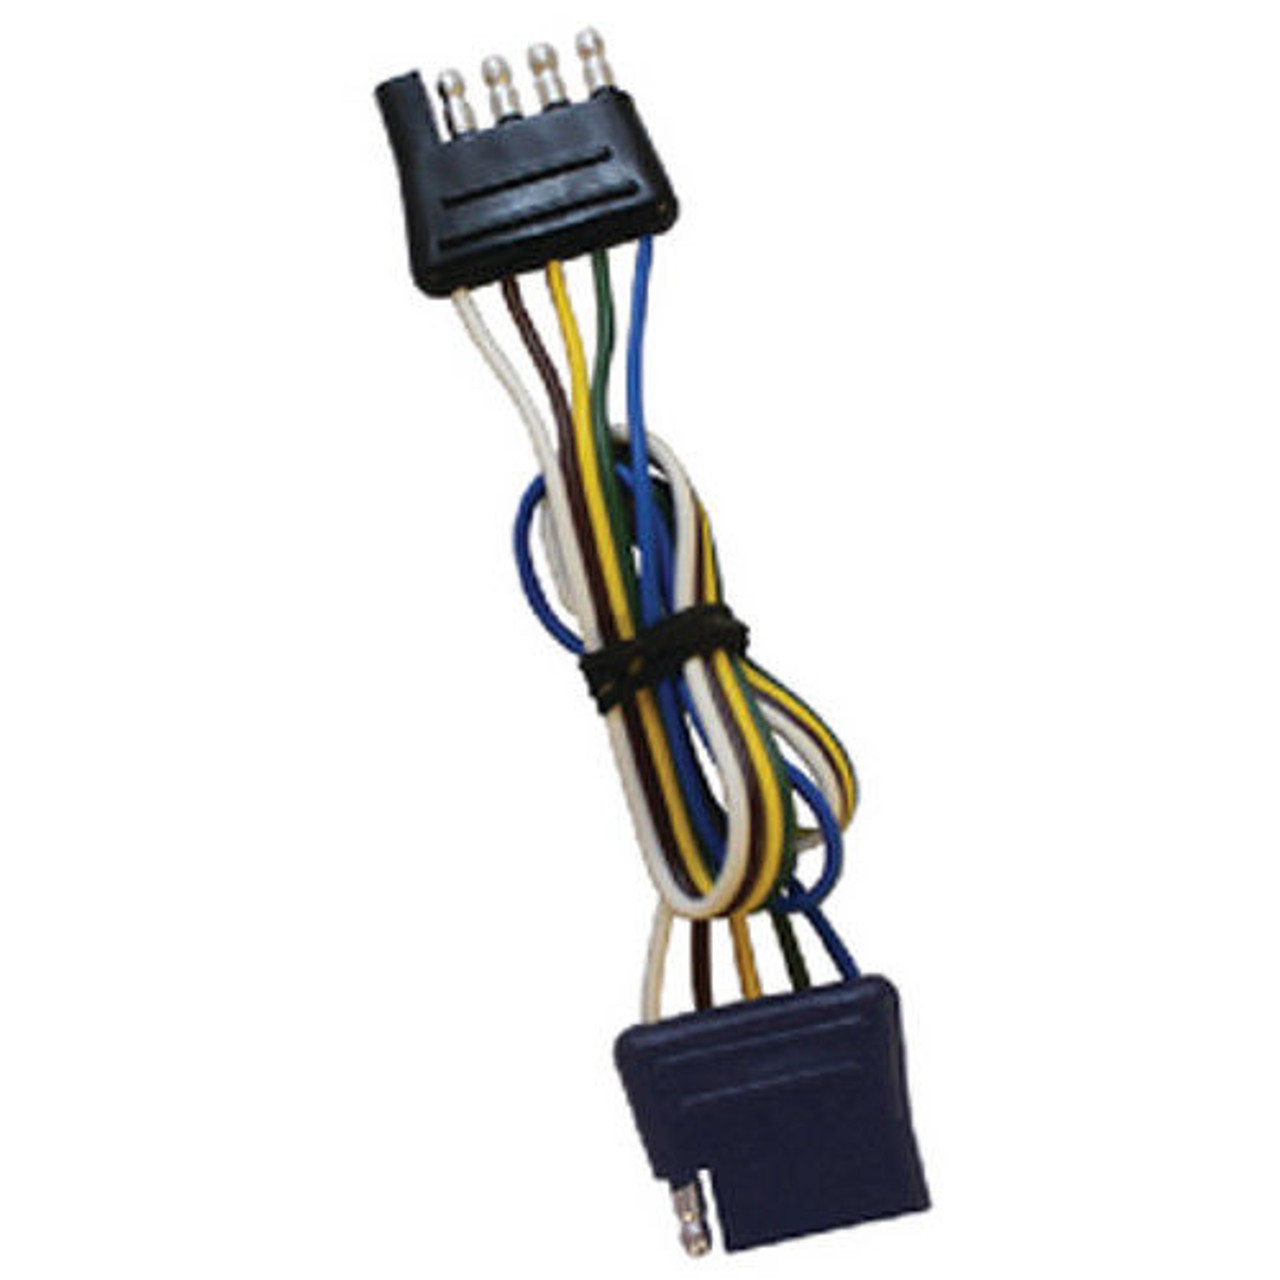 hight resolution of 60 inch long flat 5 way boat trailer wiring harness extension flat extension wire 4 60